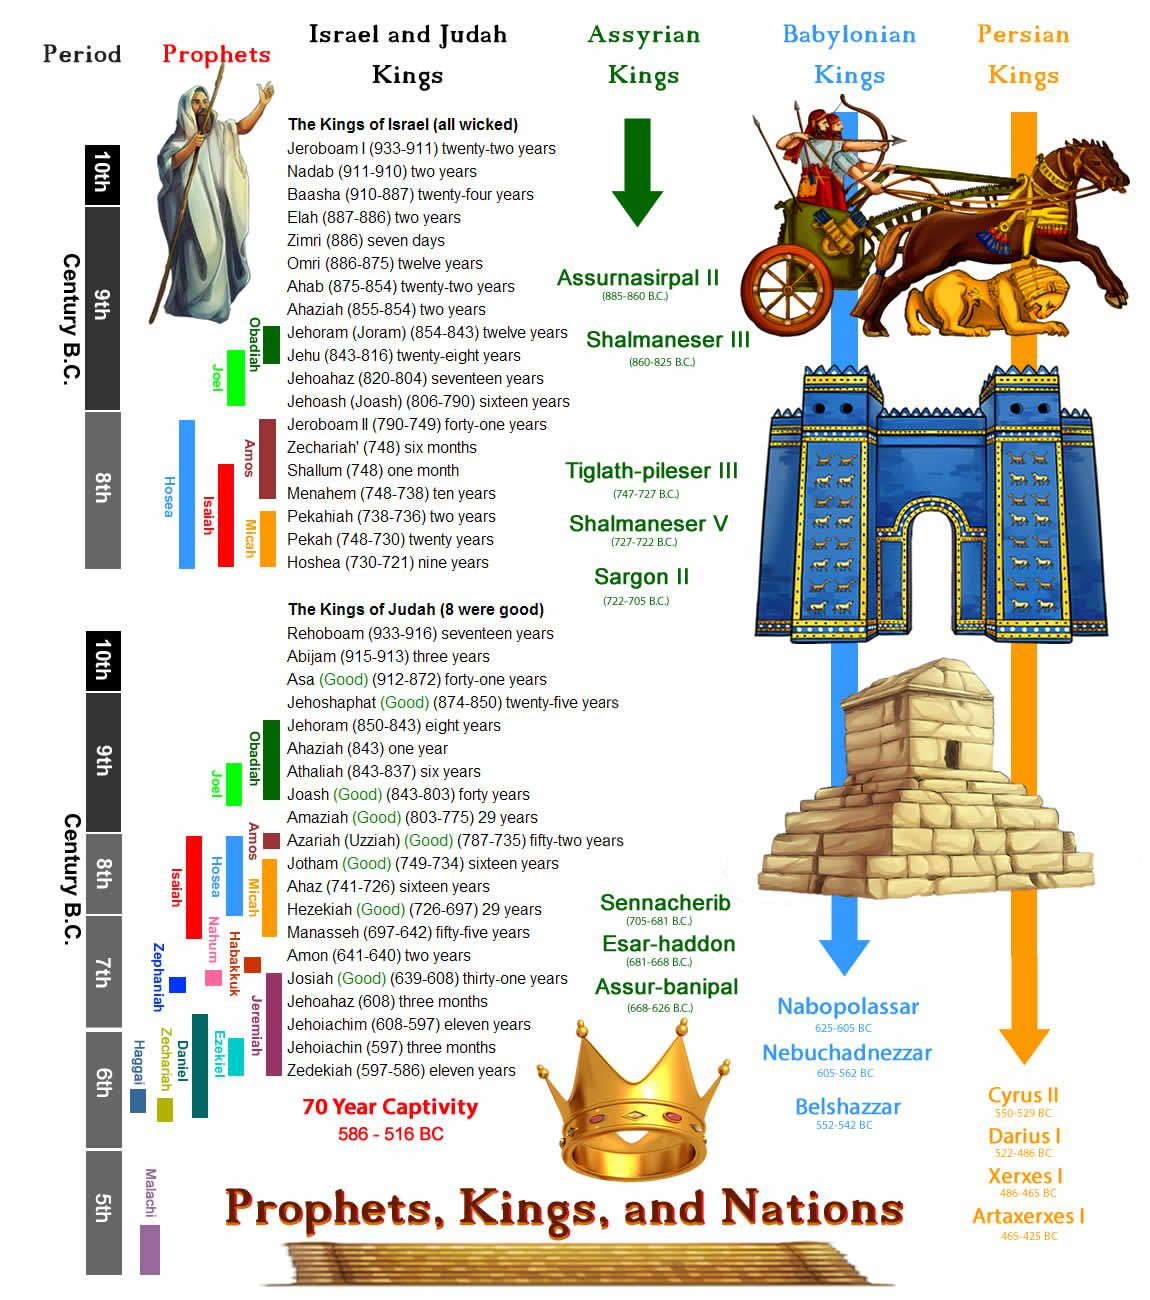 Chronology of Kings, Prophets, and Nations in the Old Testament (Bible History Online)